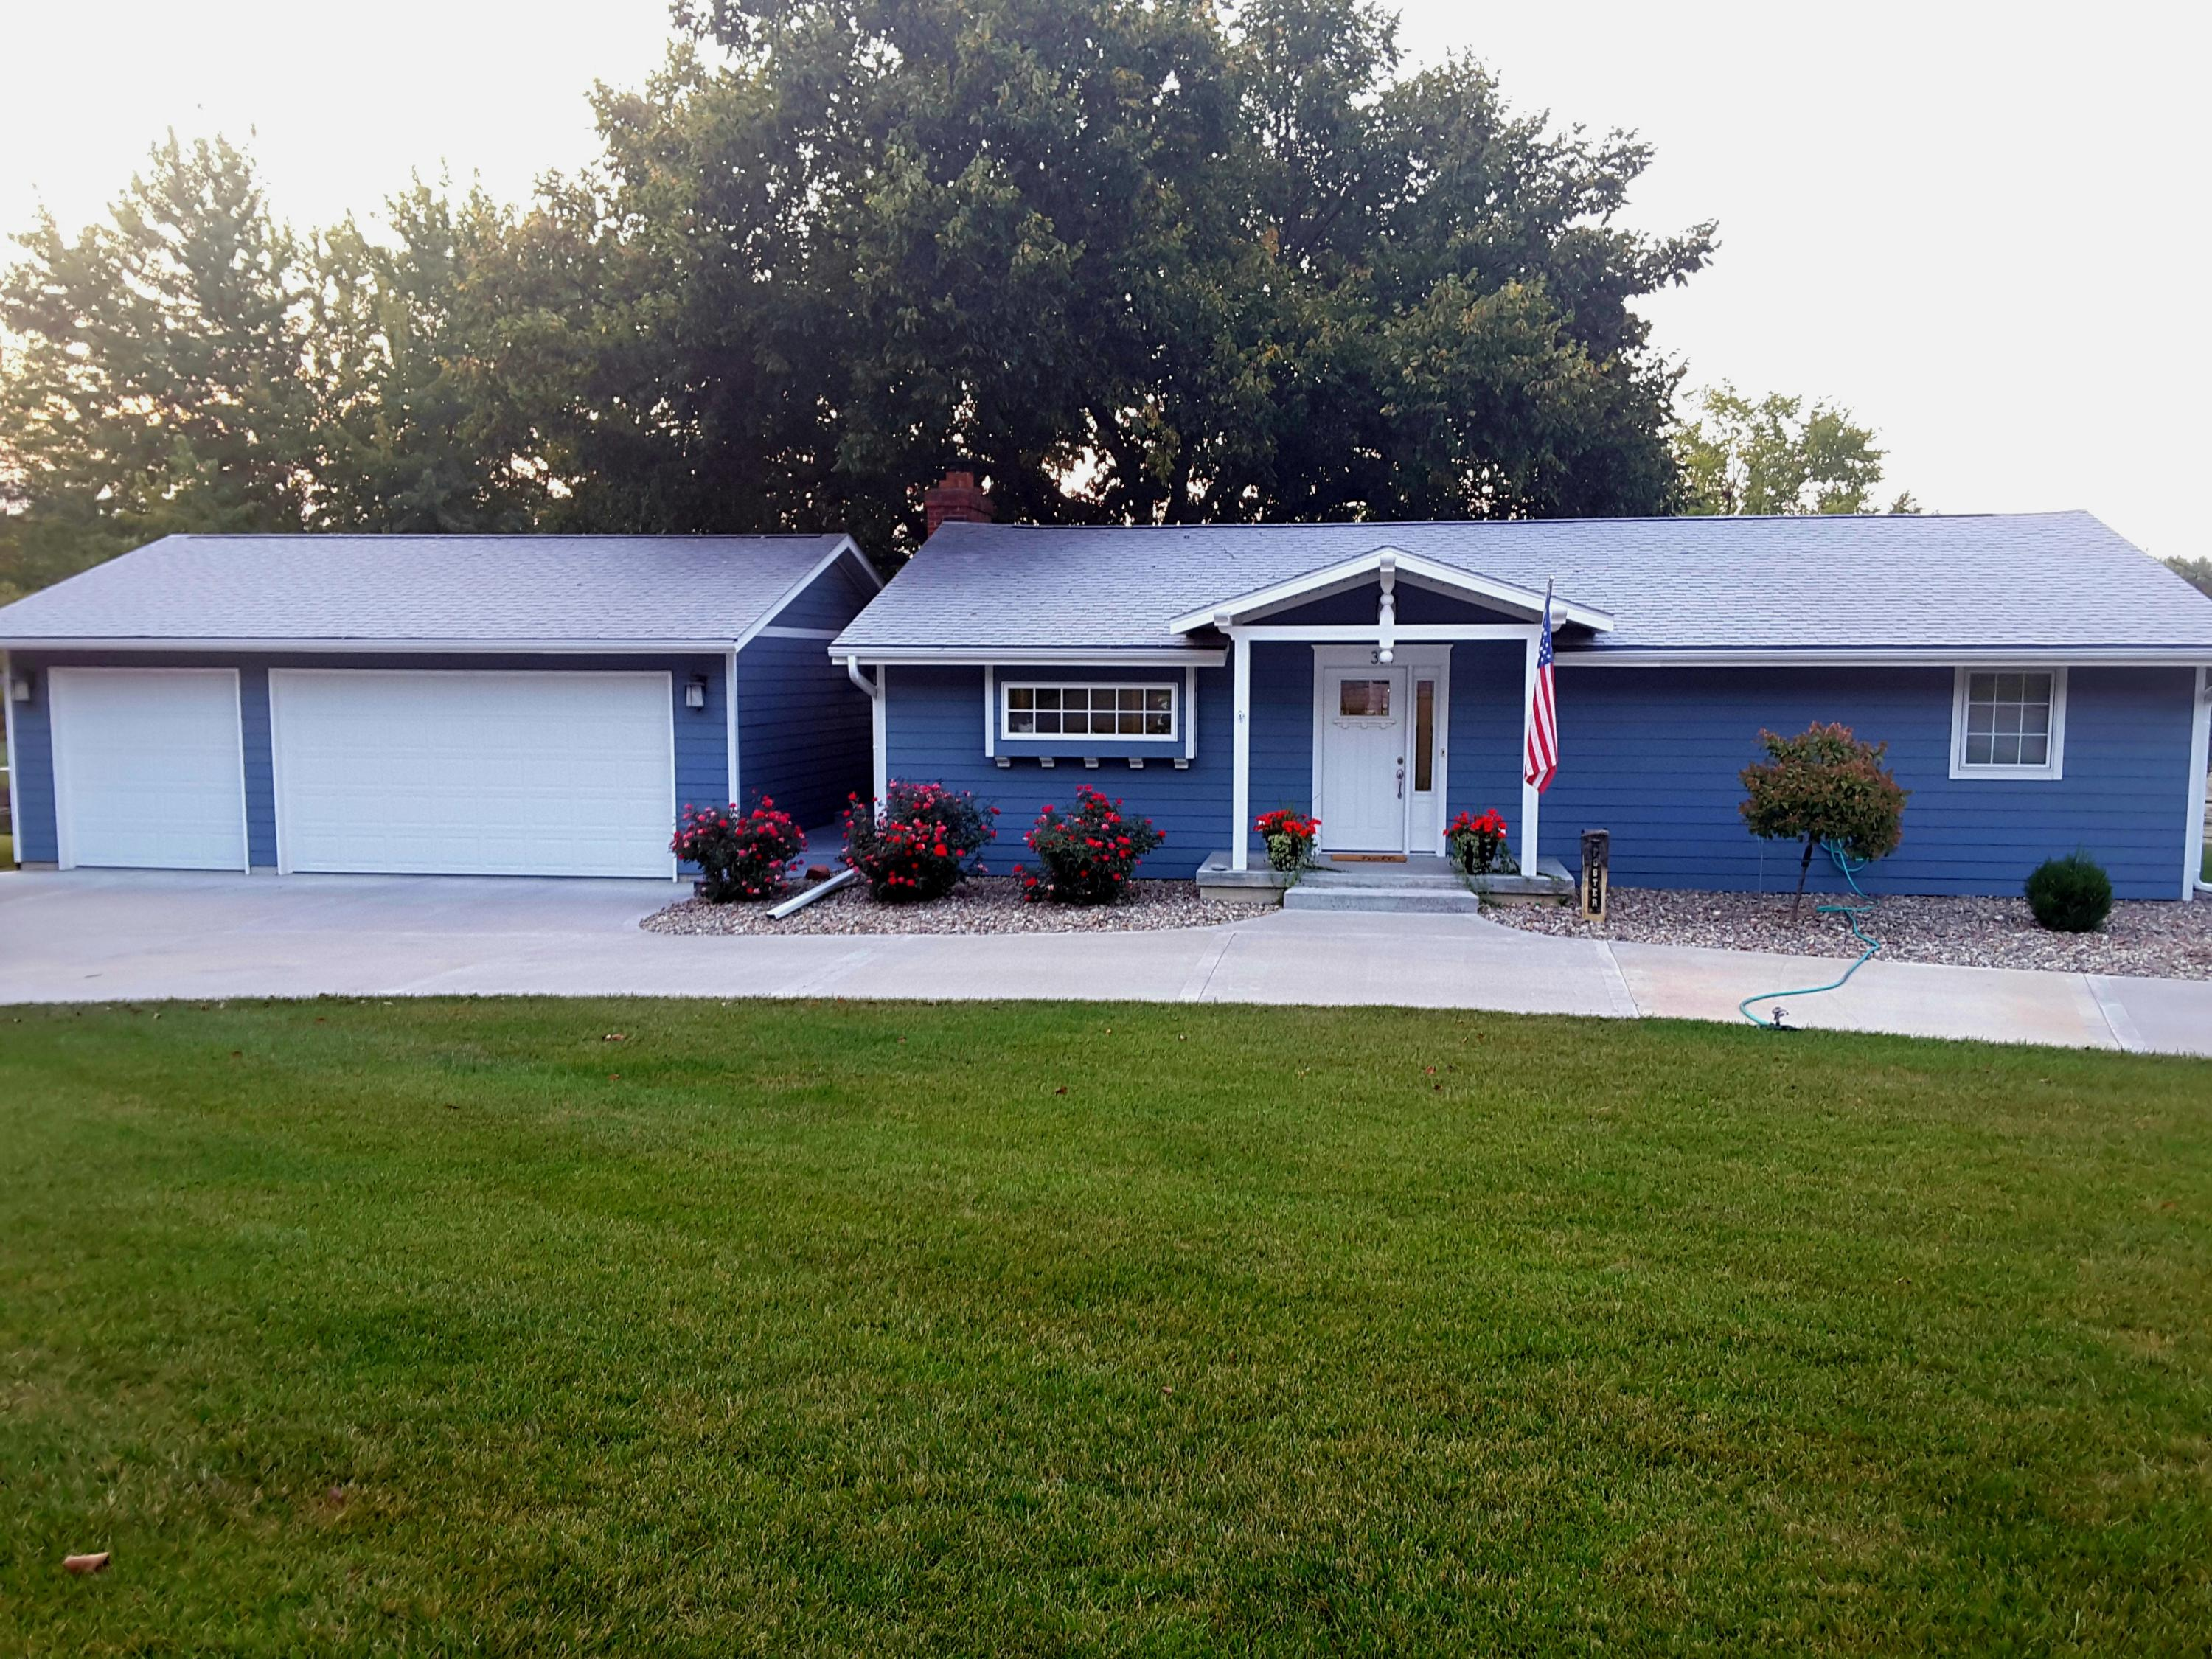 321 E 16TH Street, Maryville, Missouri 64468, 3 Bedrooms Bedrooms, ,3 BathroomsBathrooms,Residential,16TH,3910